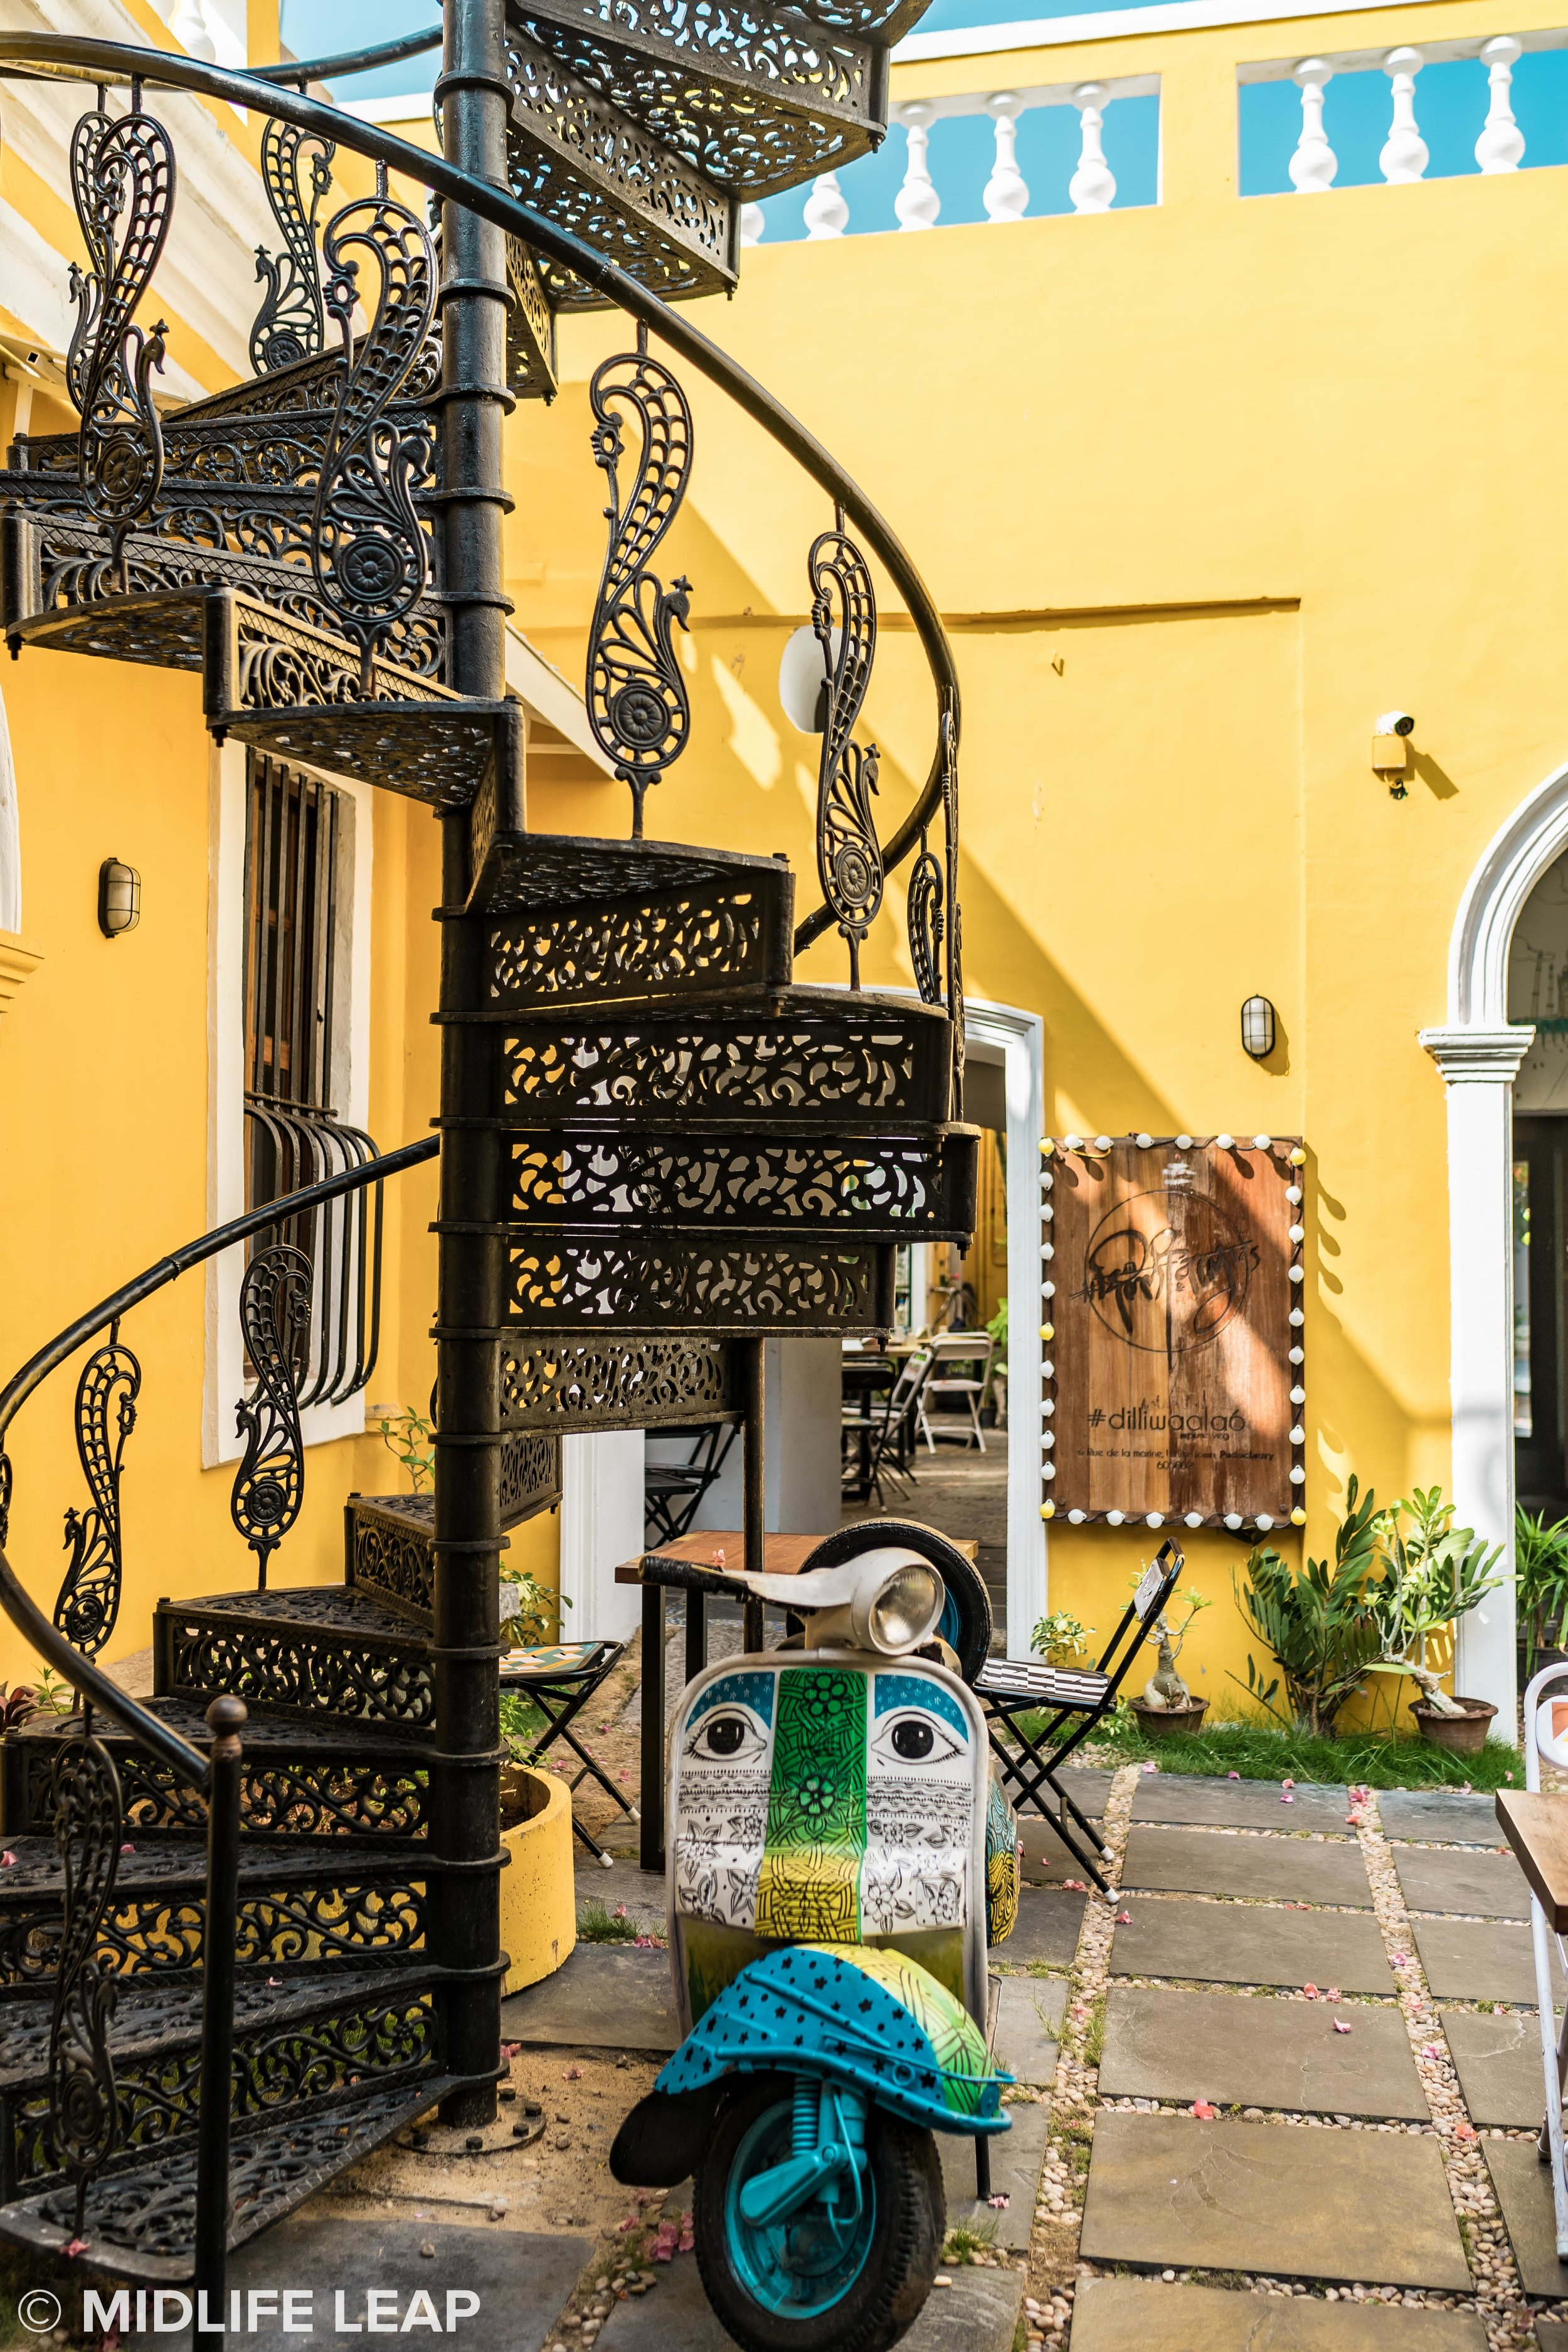 colonial-french-architecture-pondicherry-india